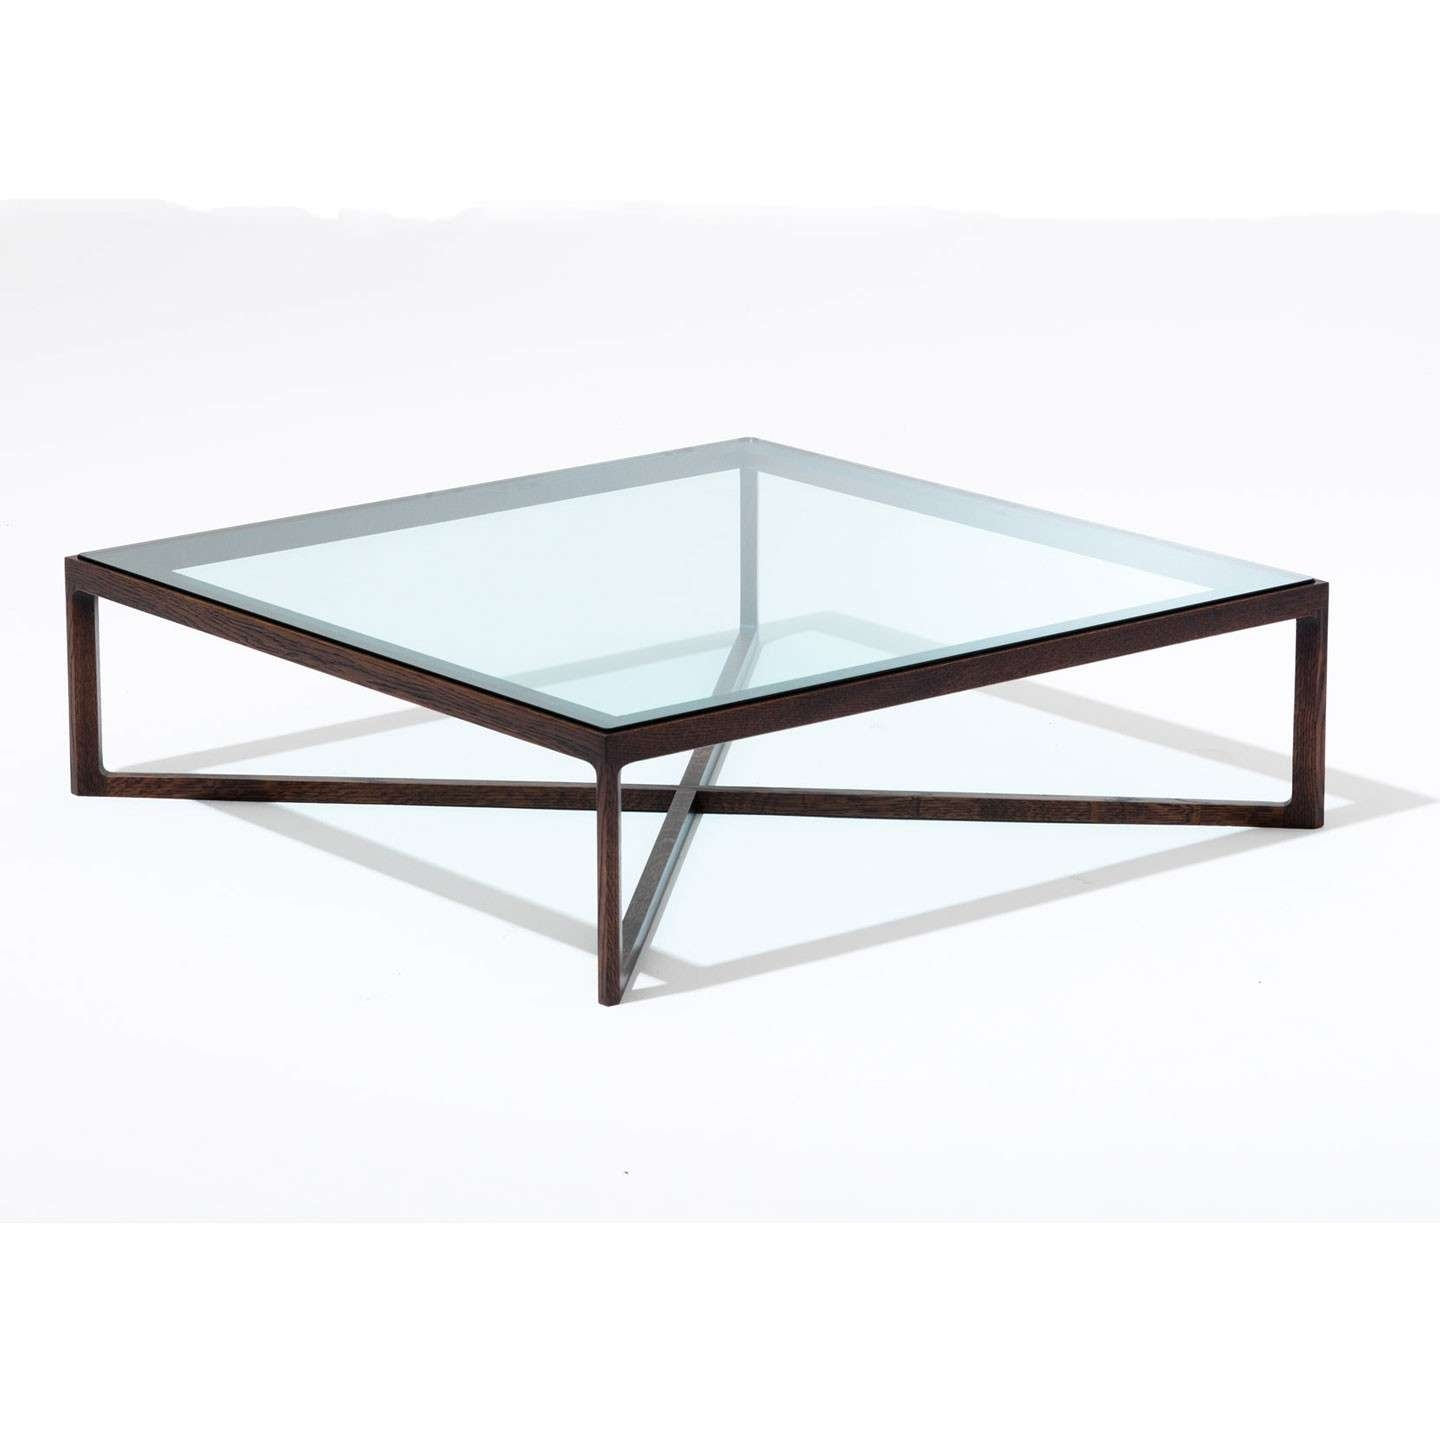 Decorations : Interior Living Room Appealing Low Profile Tempered Inside Well Known Transparent Glass Coffee Tables (View 9 of 20)